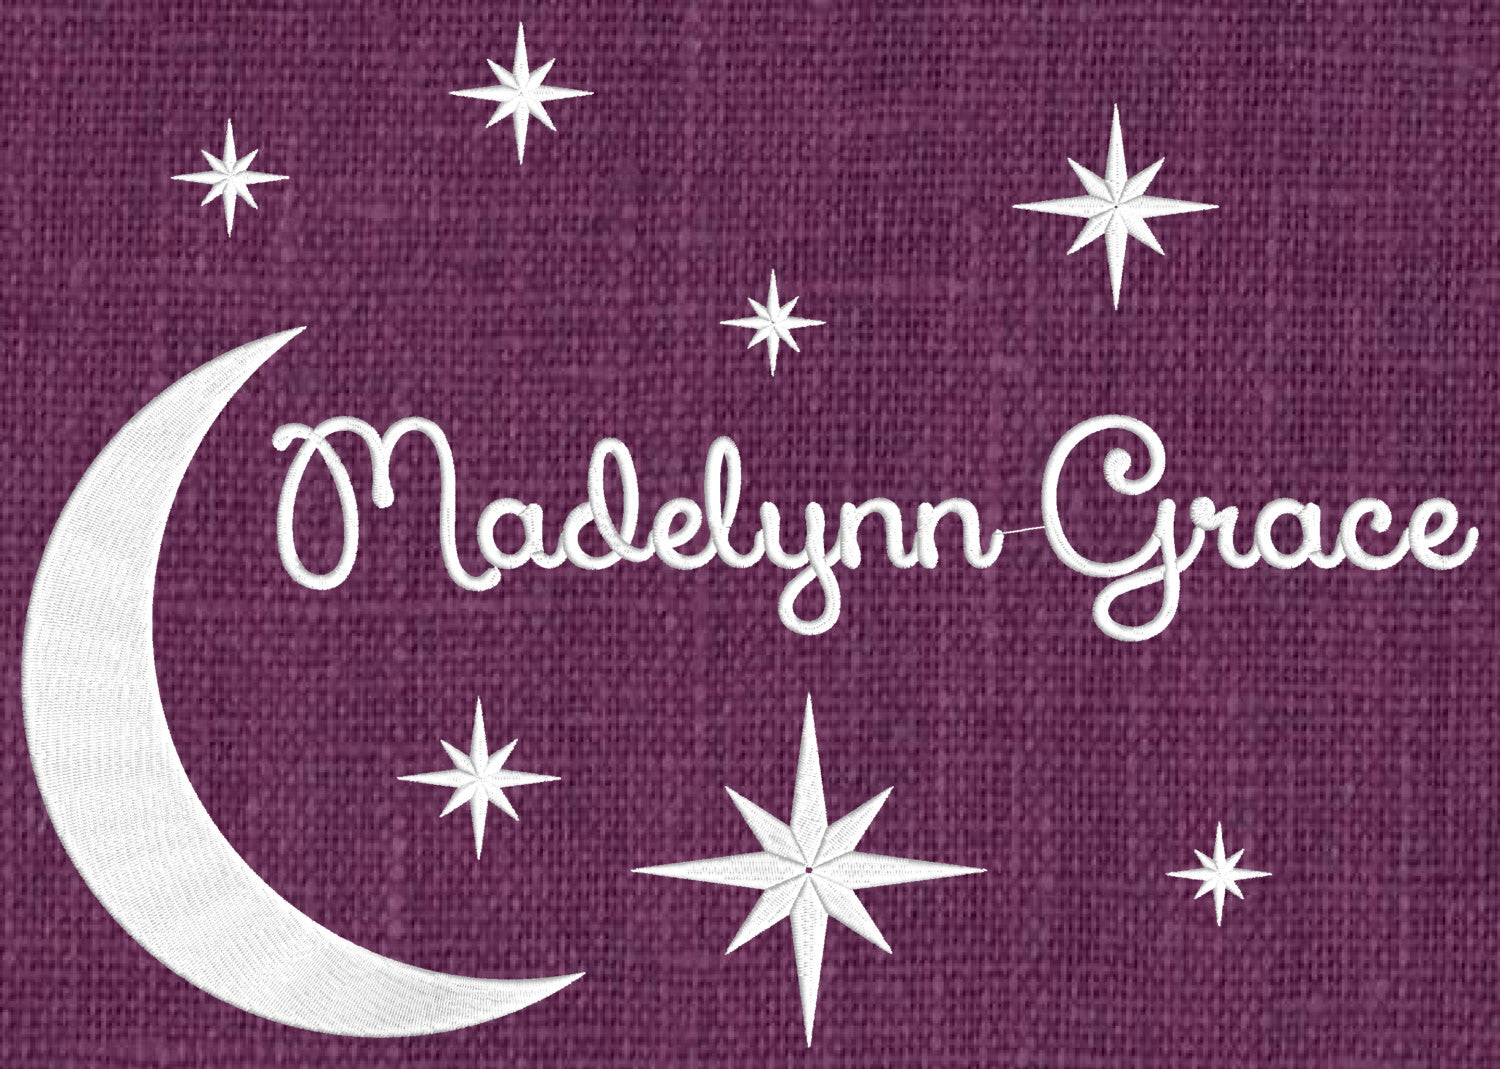 Moon & Stars Font Frame Monogram Embroidery Design - Font not included - EMBROIDERY DESIGN FILE - Instant download - Dst Hus Jef Pes formats